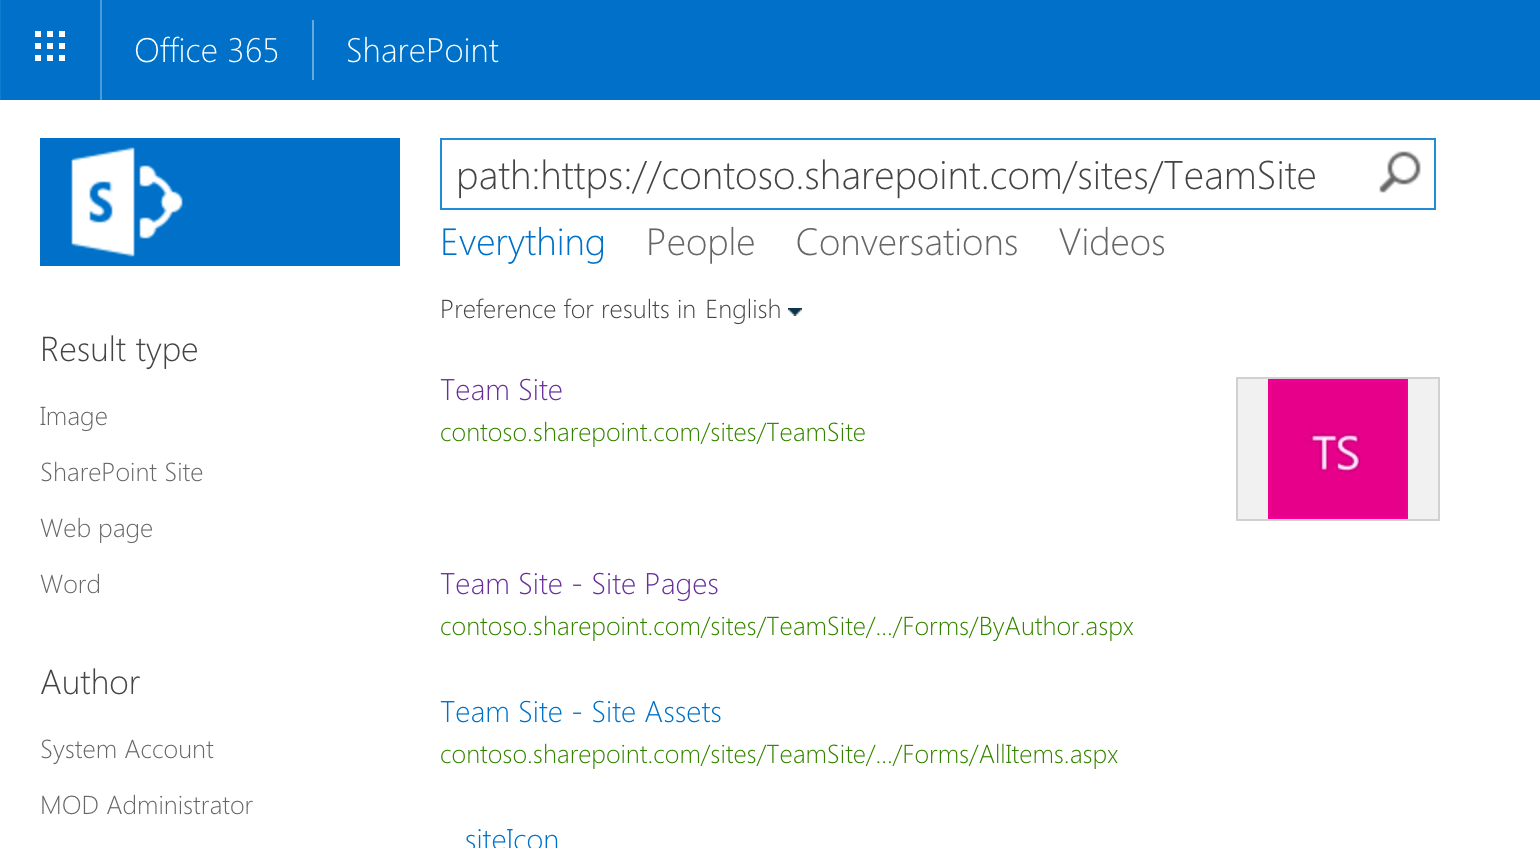 Information from the modern Team Site returned in SharePoint search results